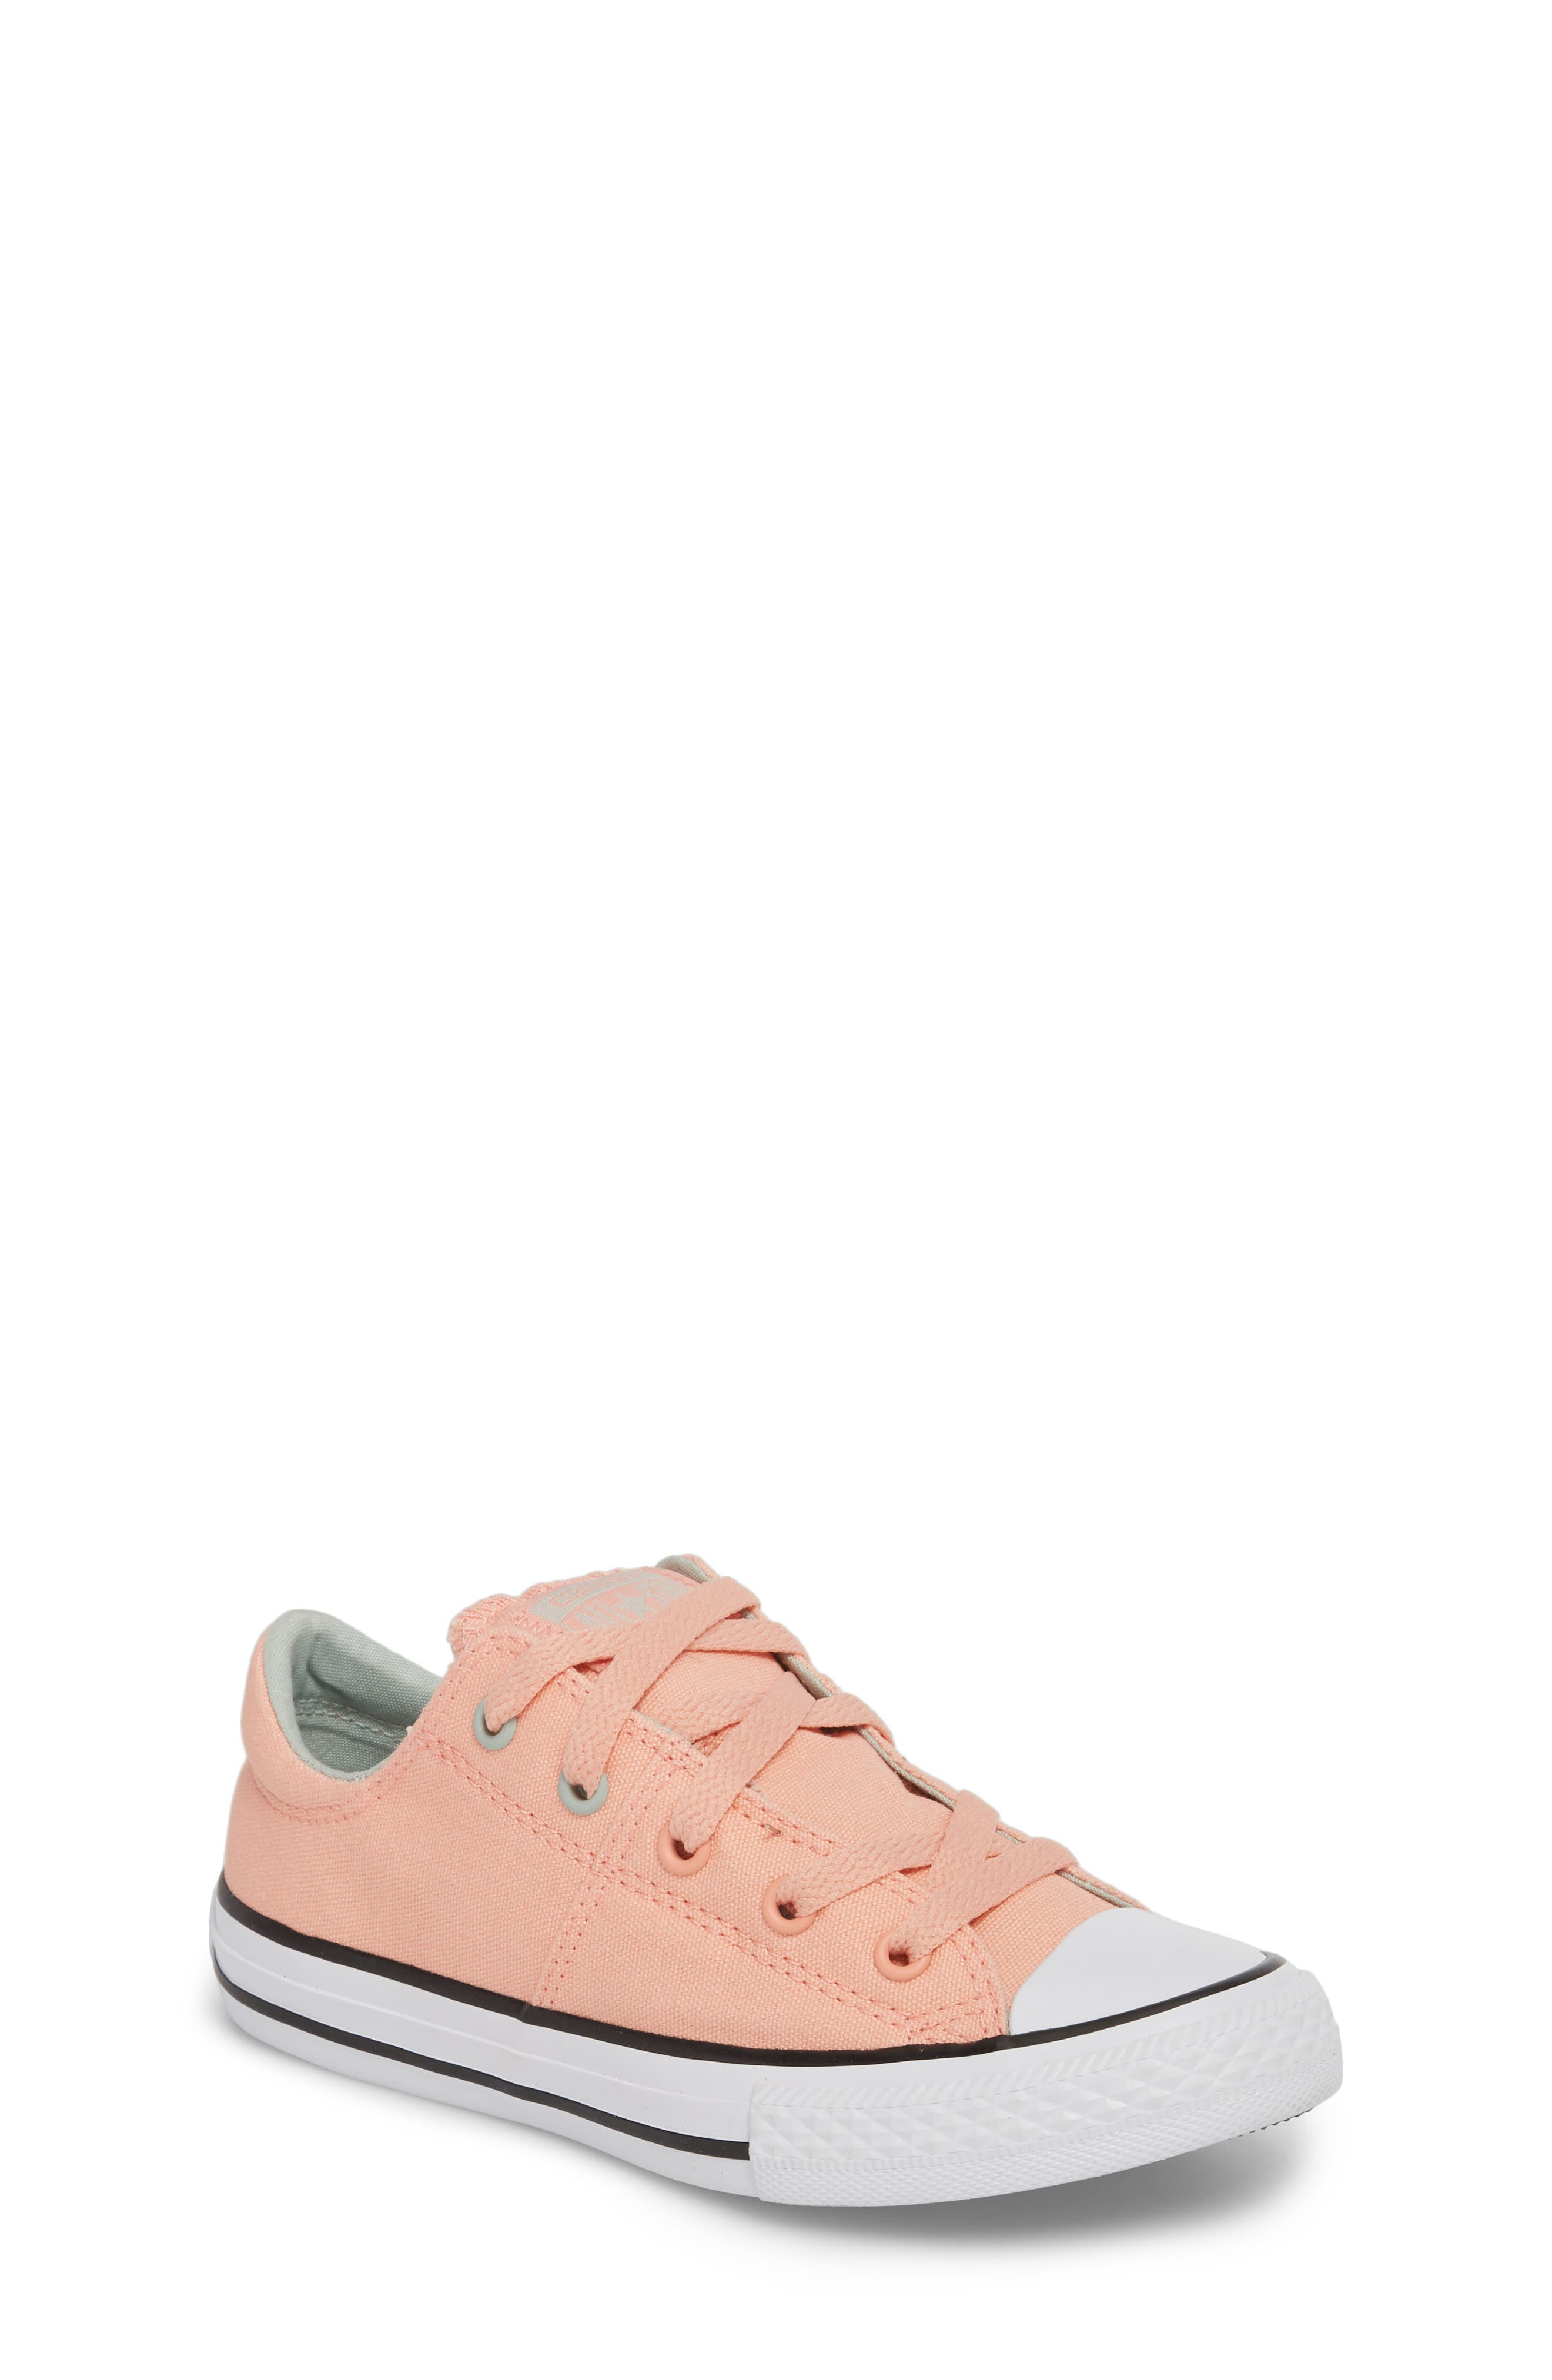 Converse All Star® Madison Patterned Low Top Sneaker (Toddler, Little Kid & Big Kid)